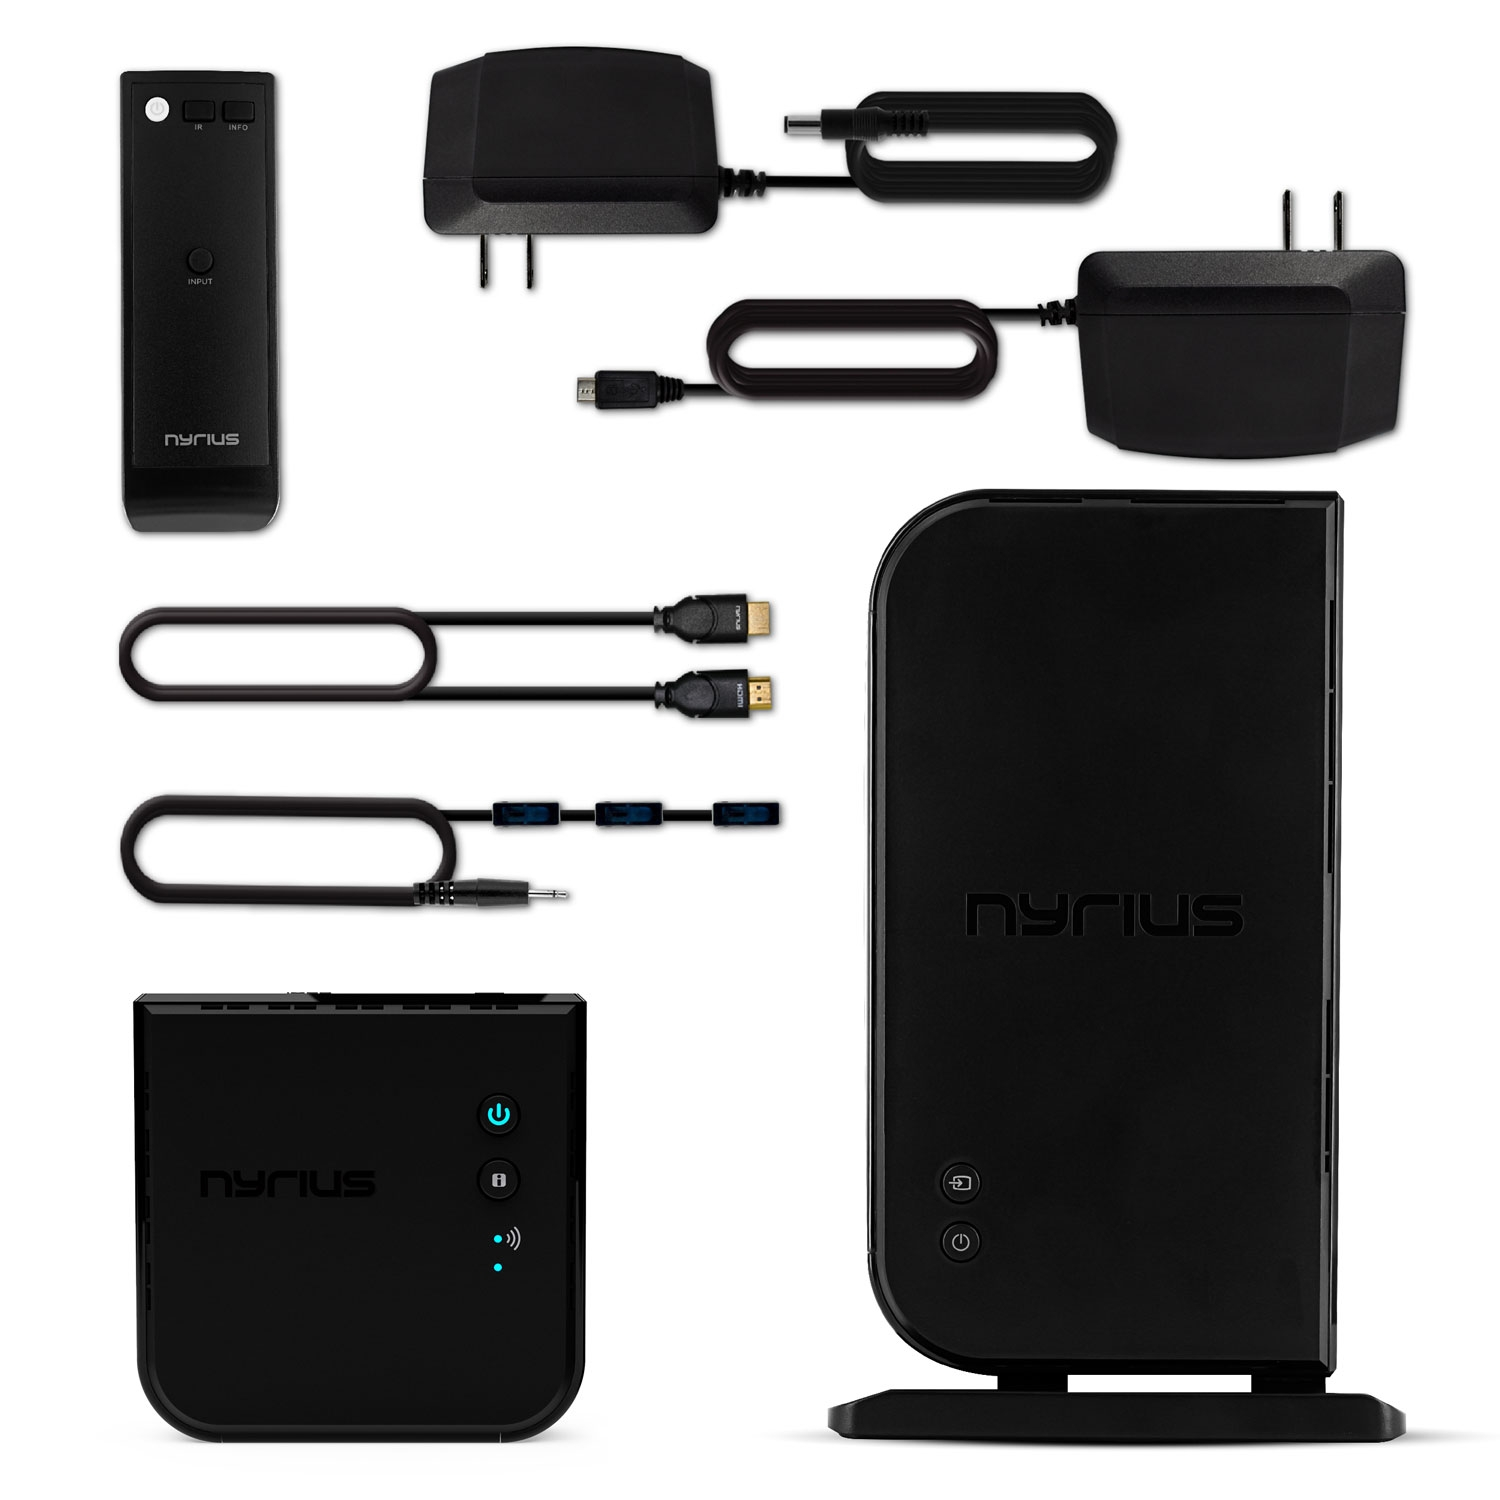 ARIES Home+ Wireless HDMI 2 Input Transmitter & Receiver